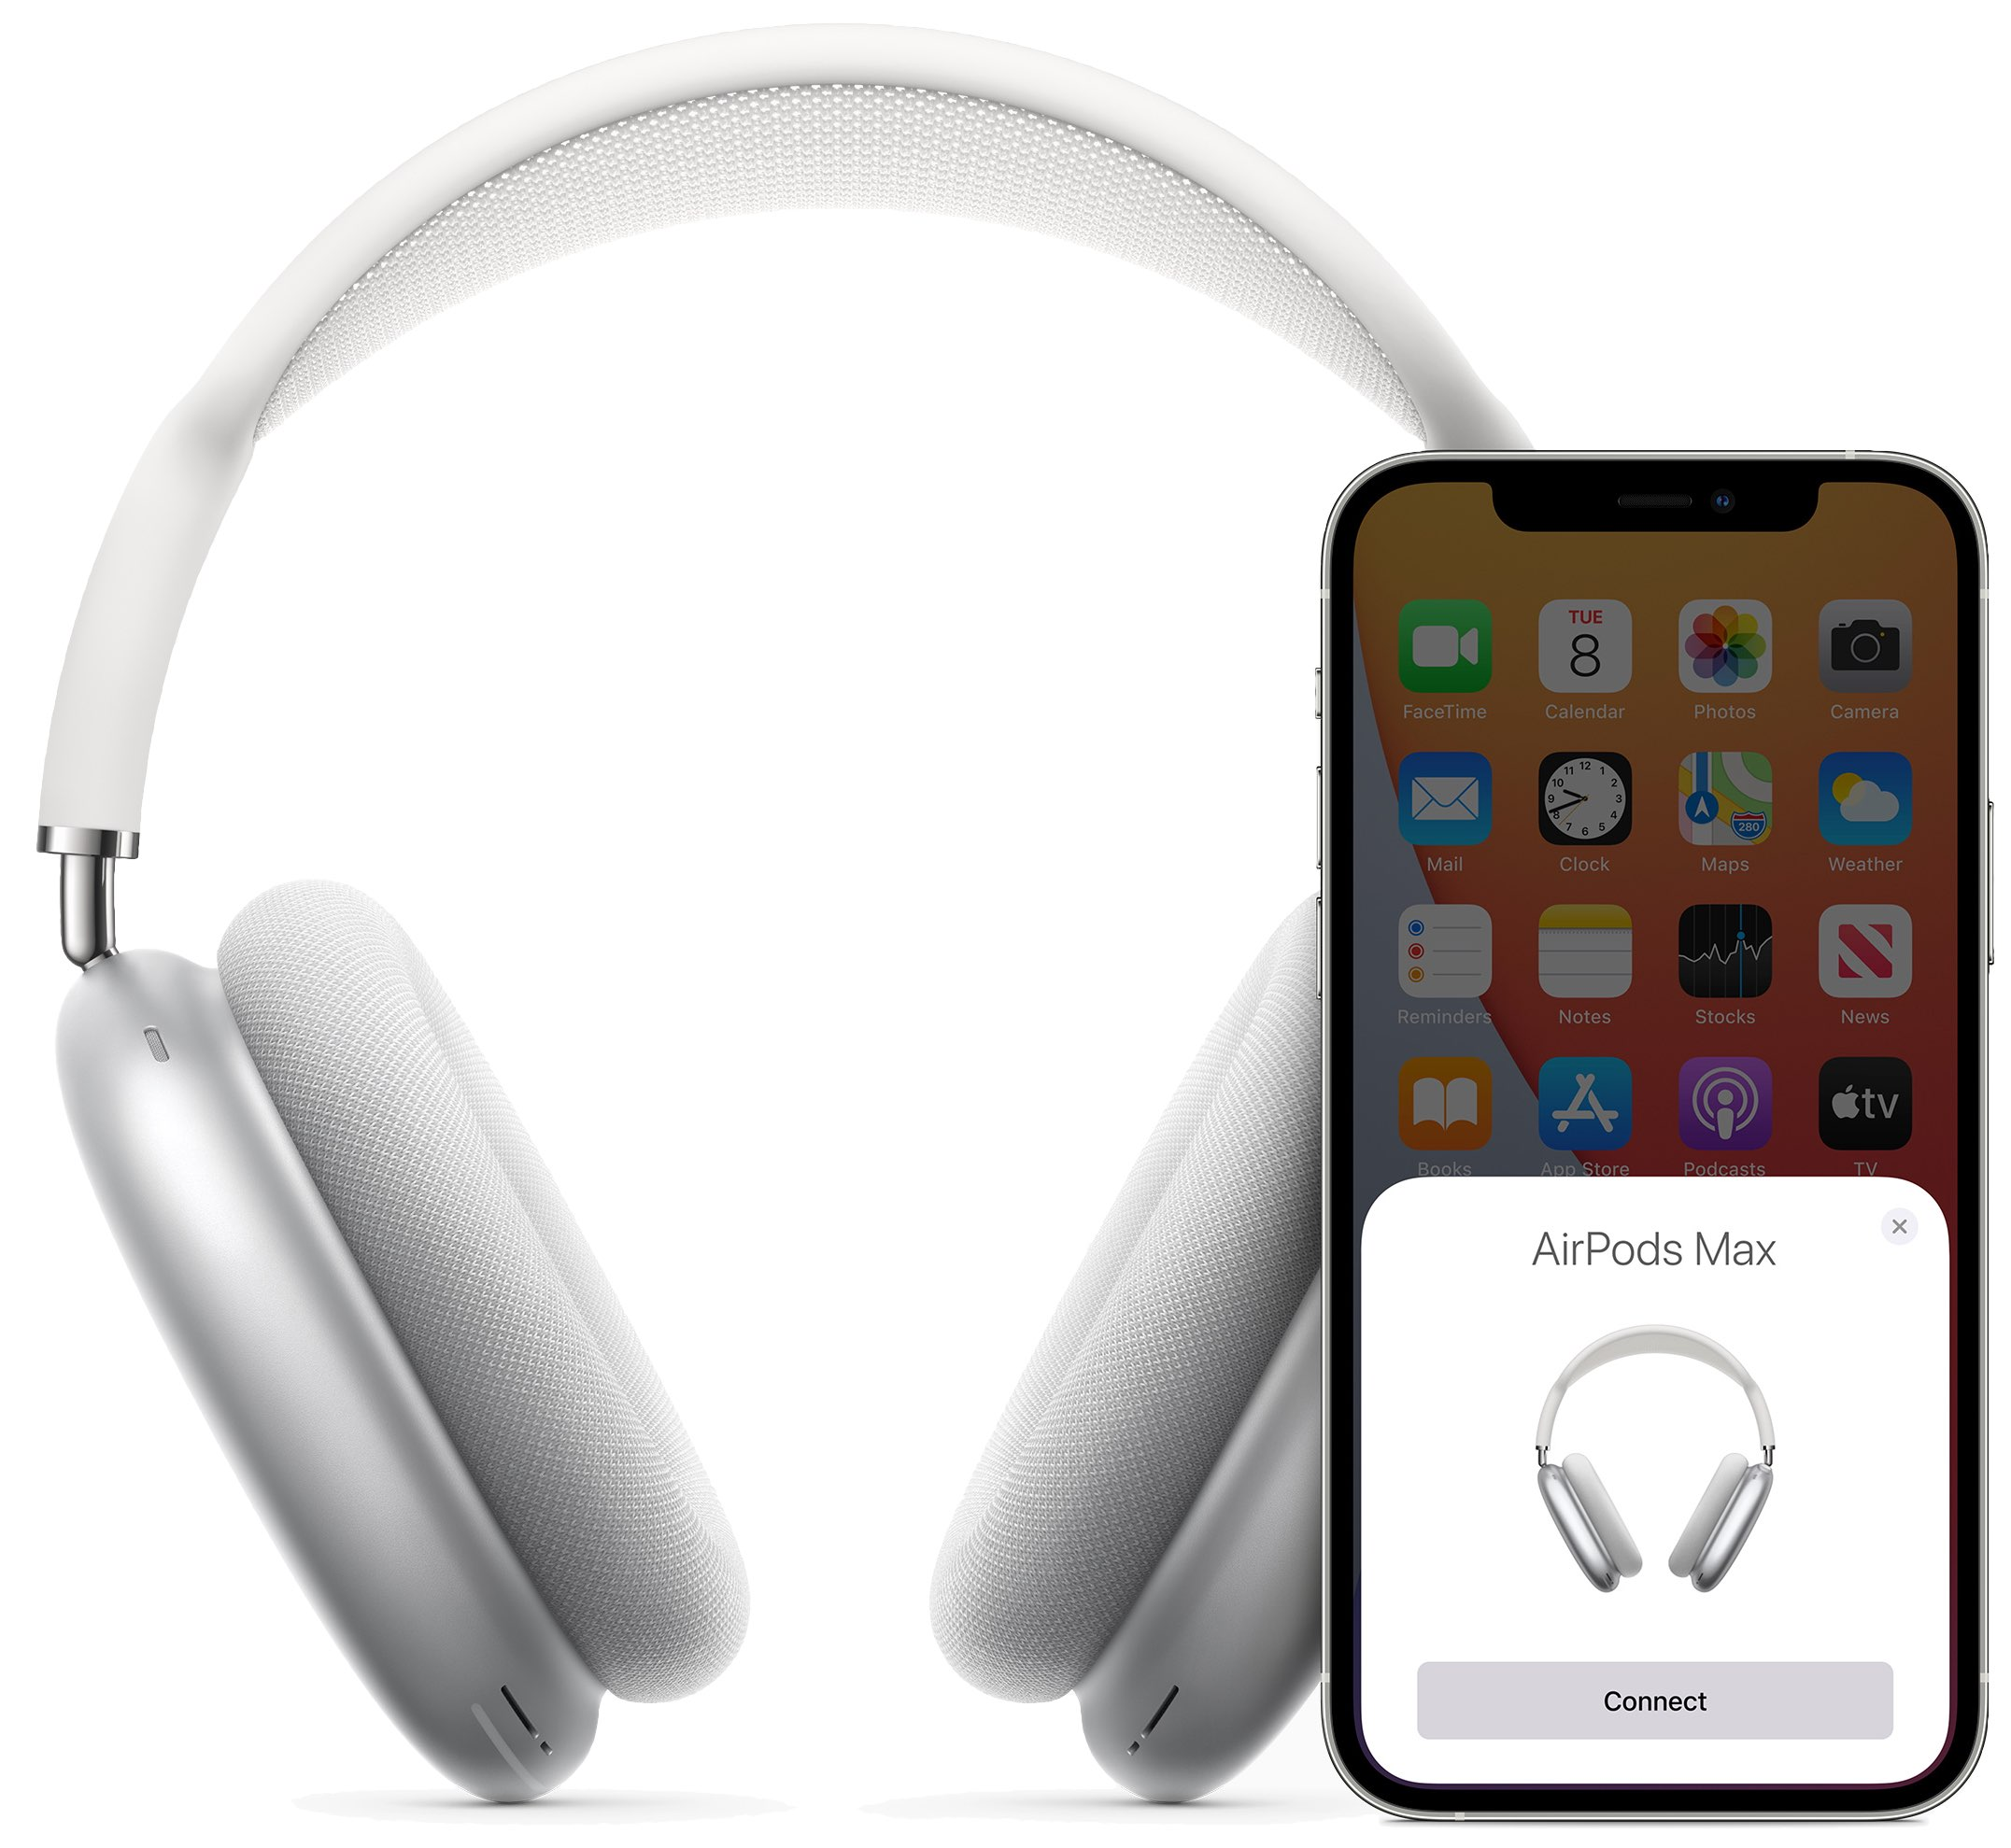 An image showing the AirPods Max pairing setup animation on an iPhone